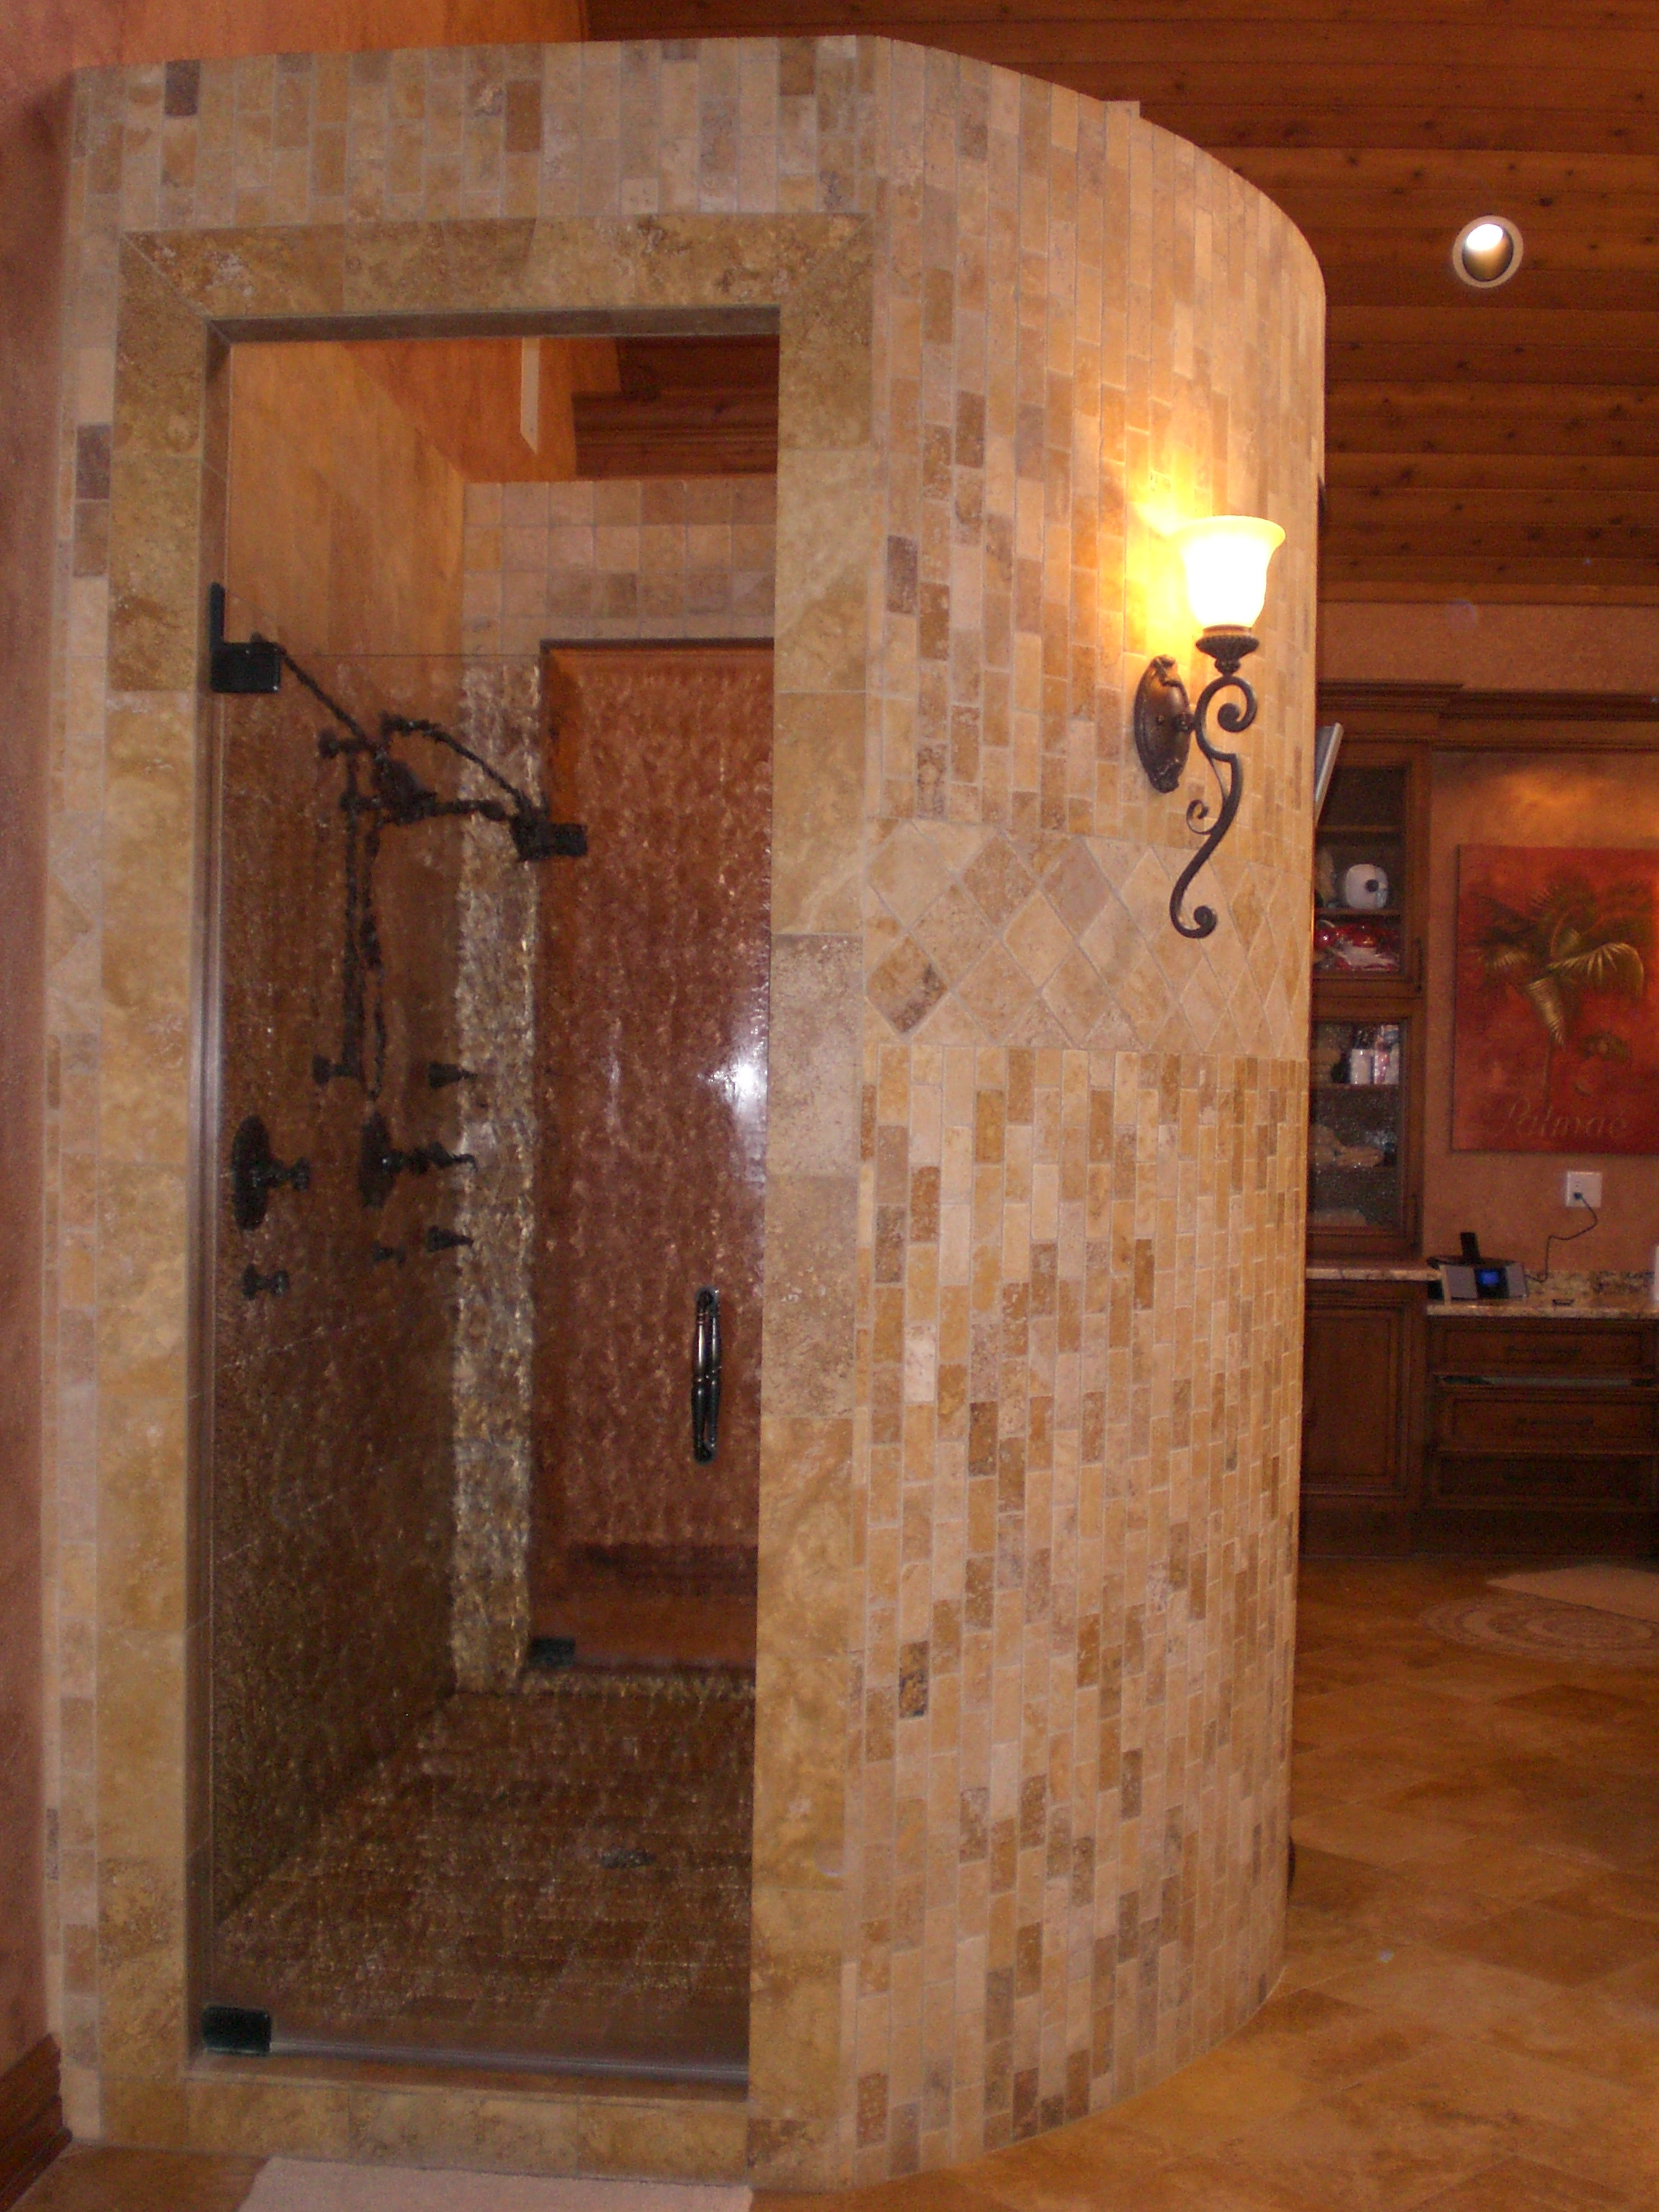 How to Design A Shower without A Door Unique Bathroom Shower Designs without Doors Bathroom Home